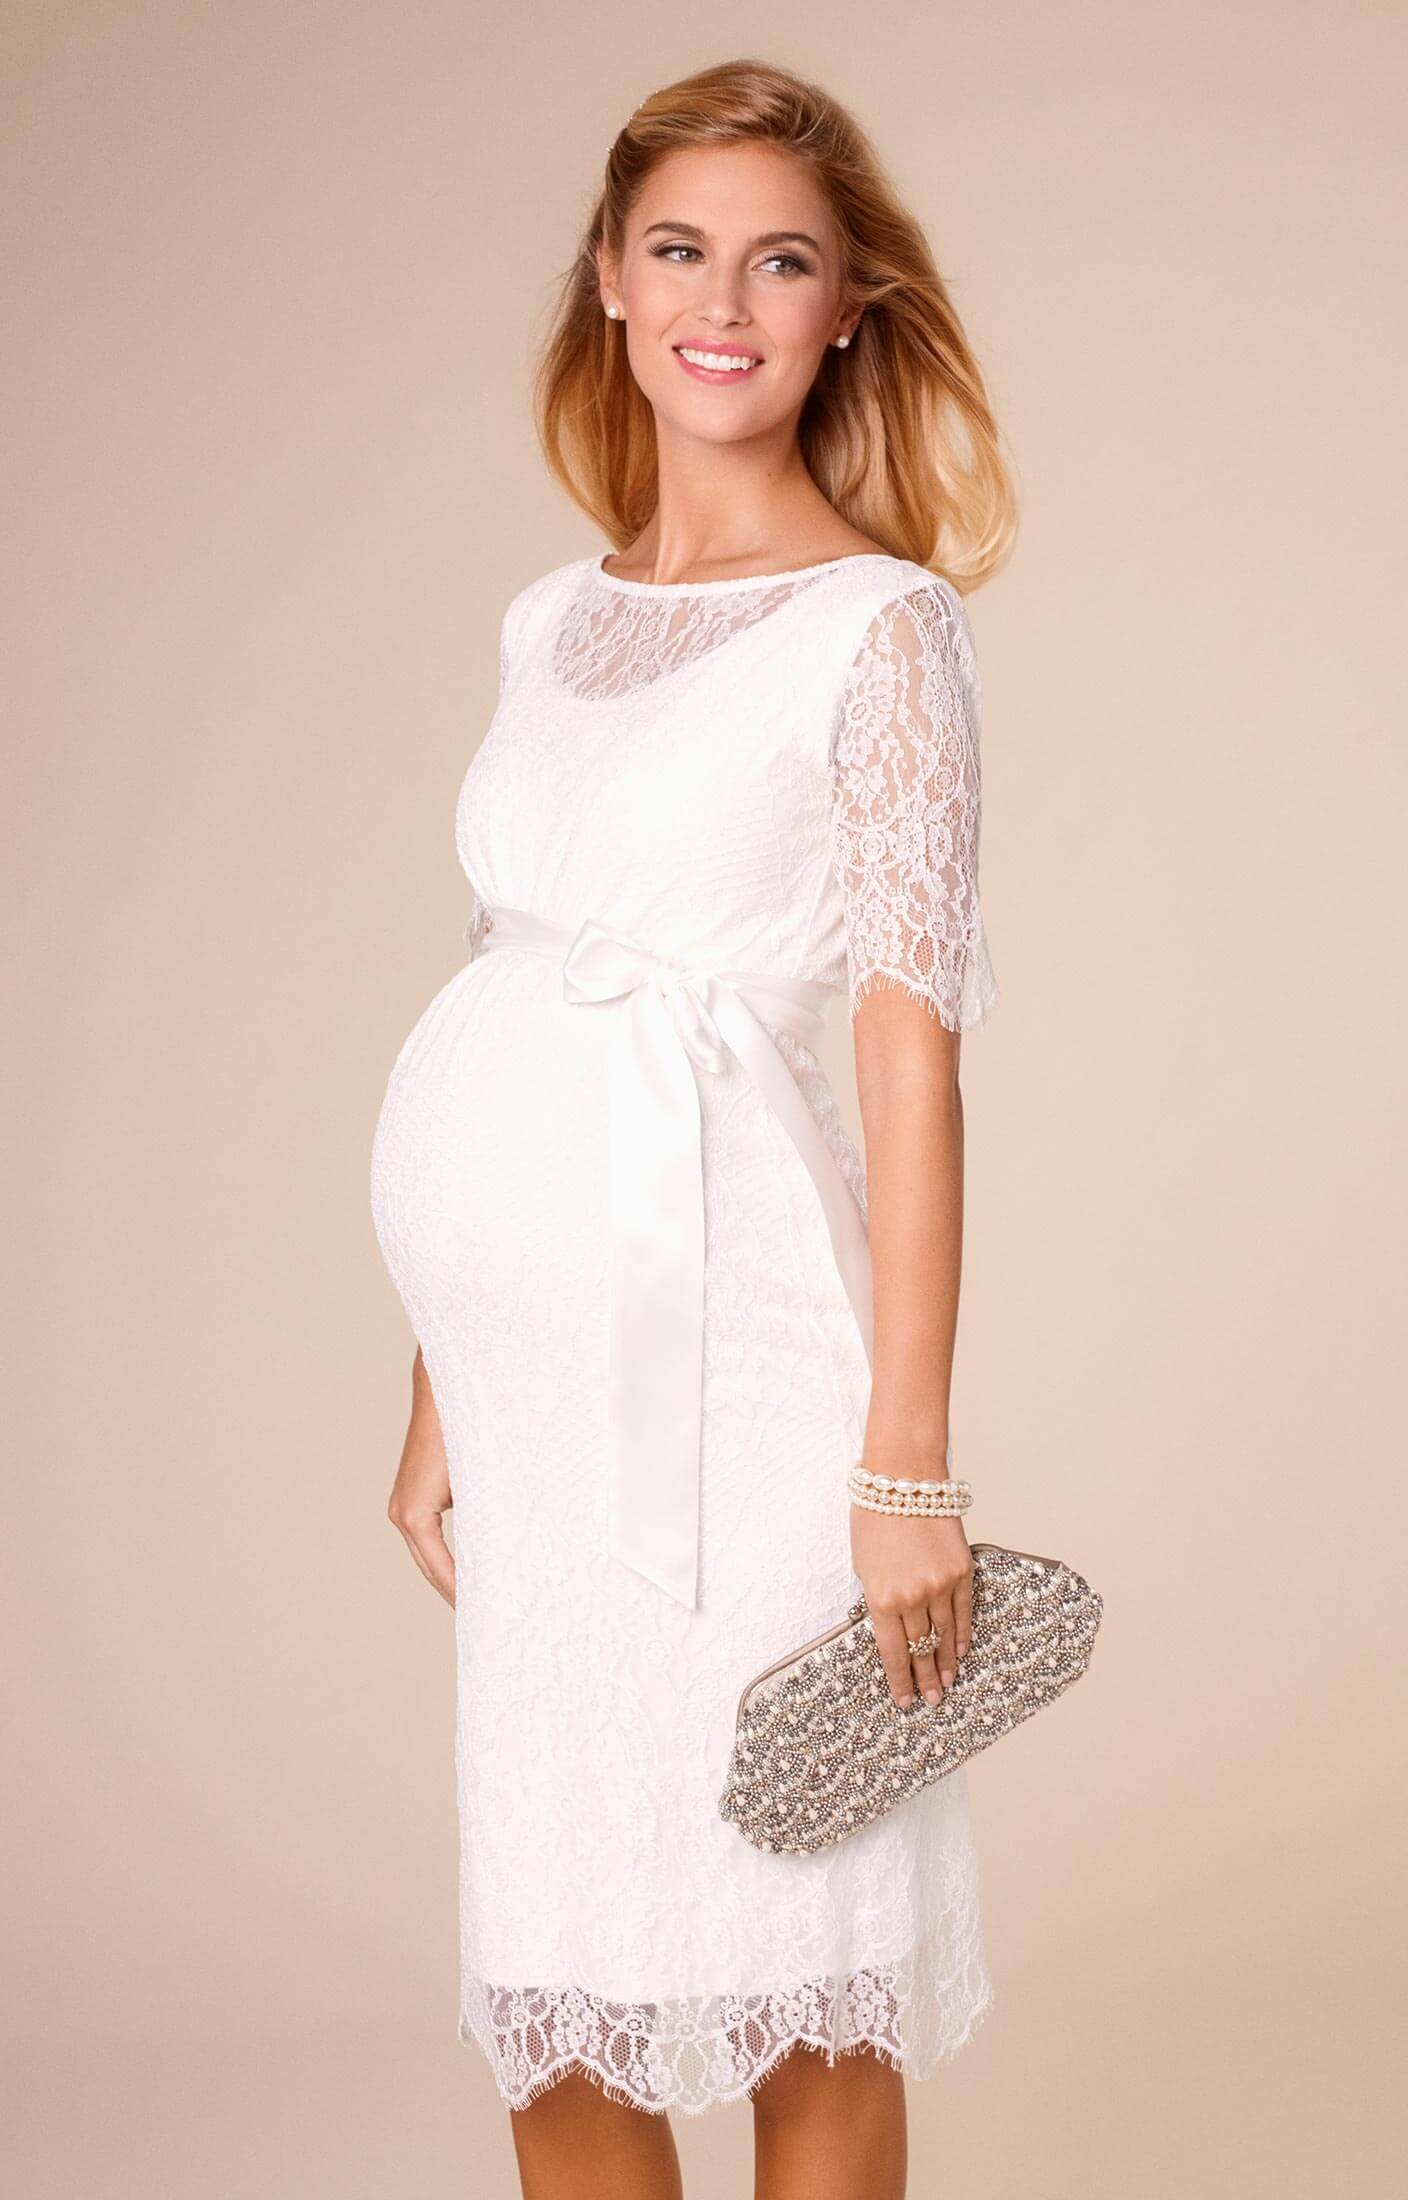 Starla Maternity Wedding Dress Short Ivory - Maternity Wedding ...